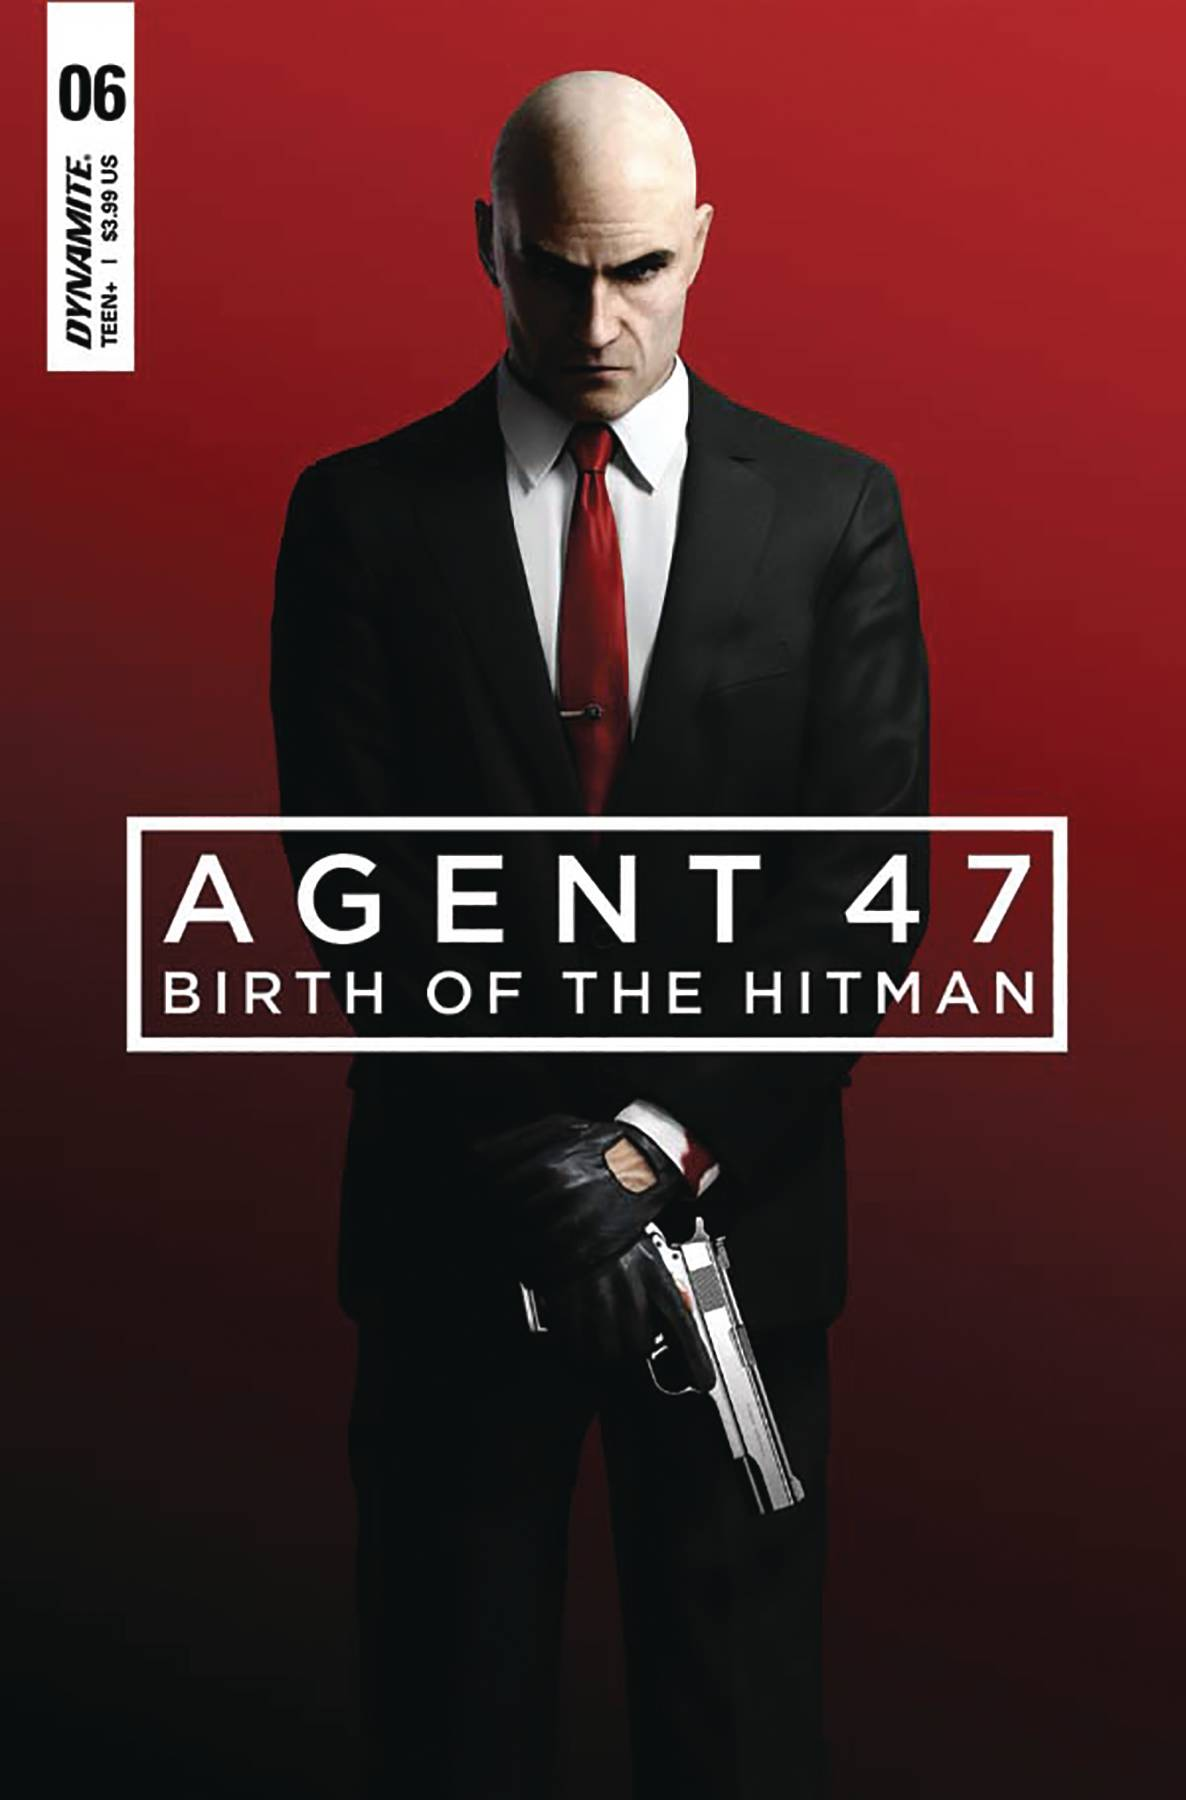 Agent 47 Birth of Hitman